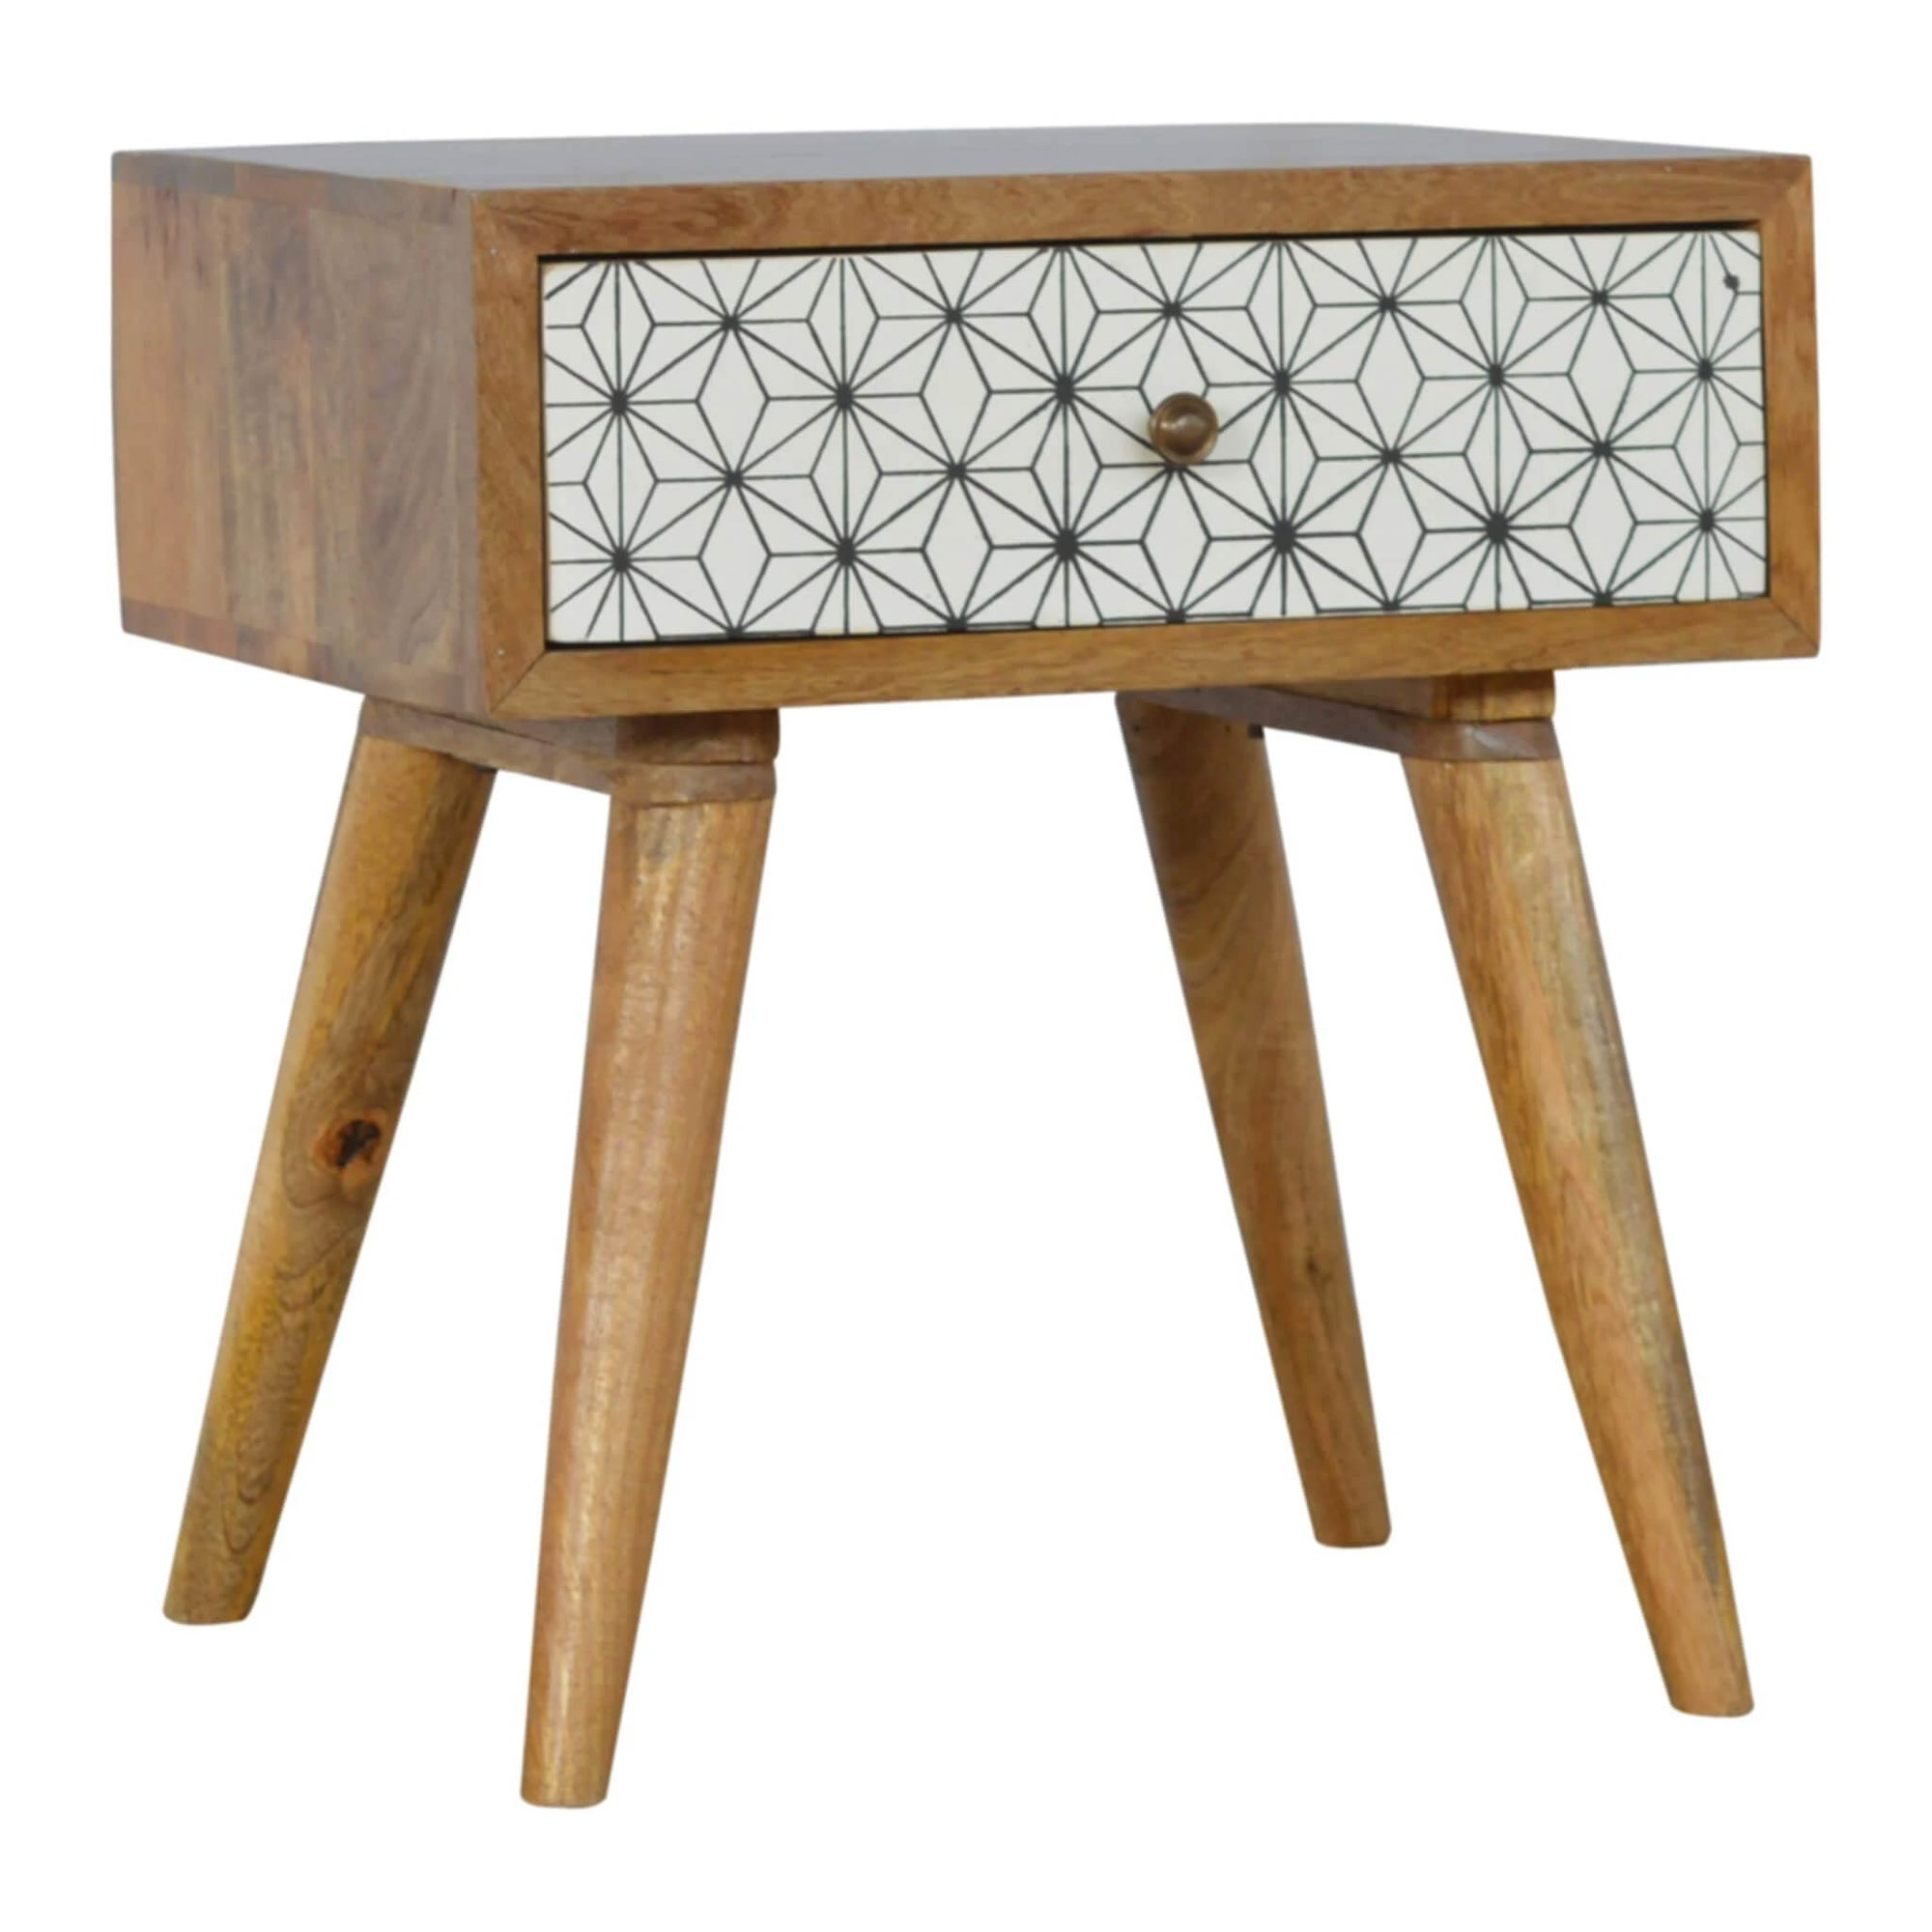 Artisan Retro Bedside Side Table With Drawer Detailing by Roseland Furniture